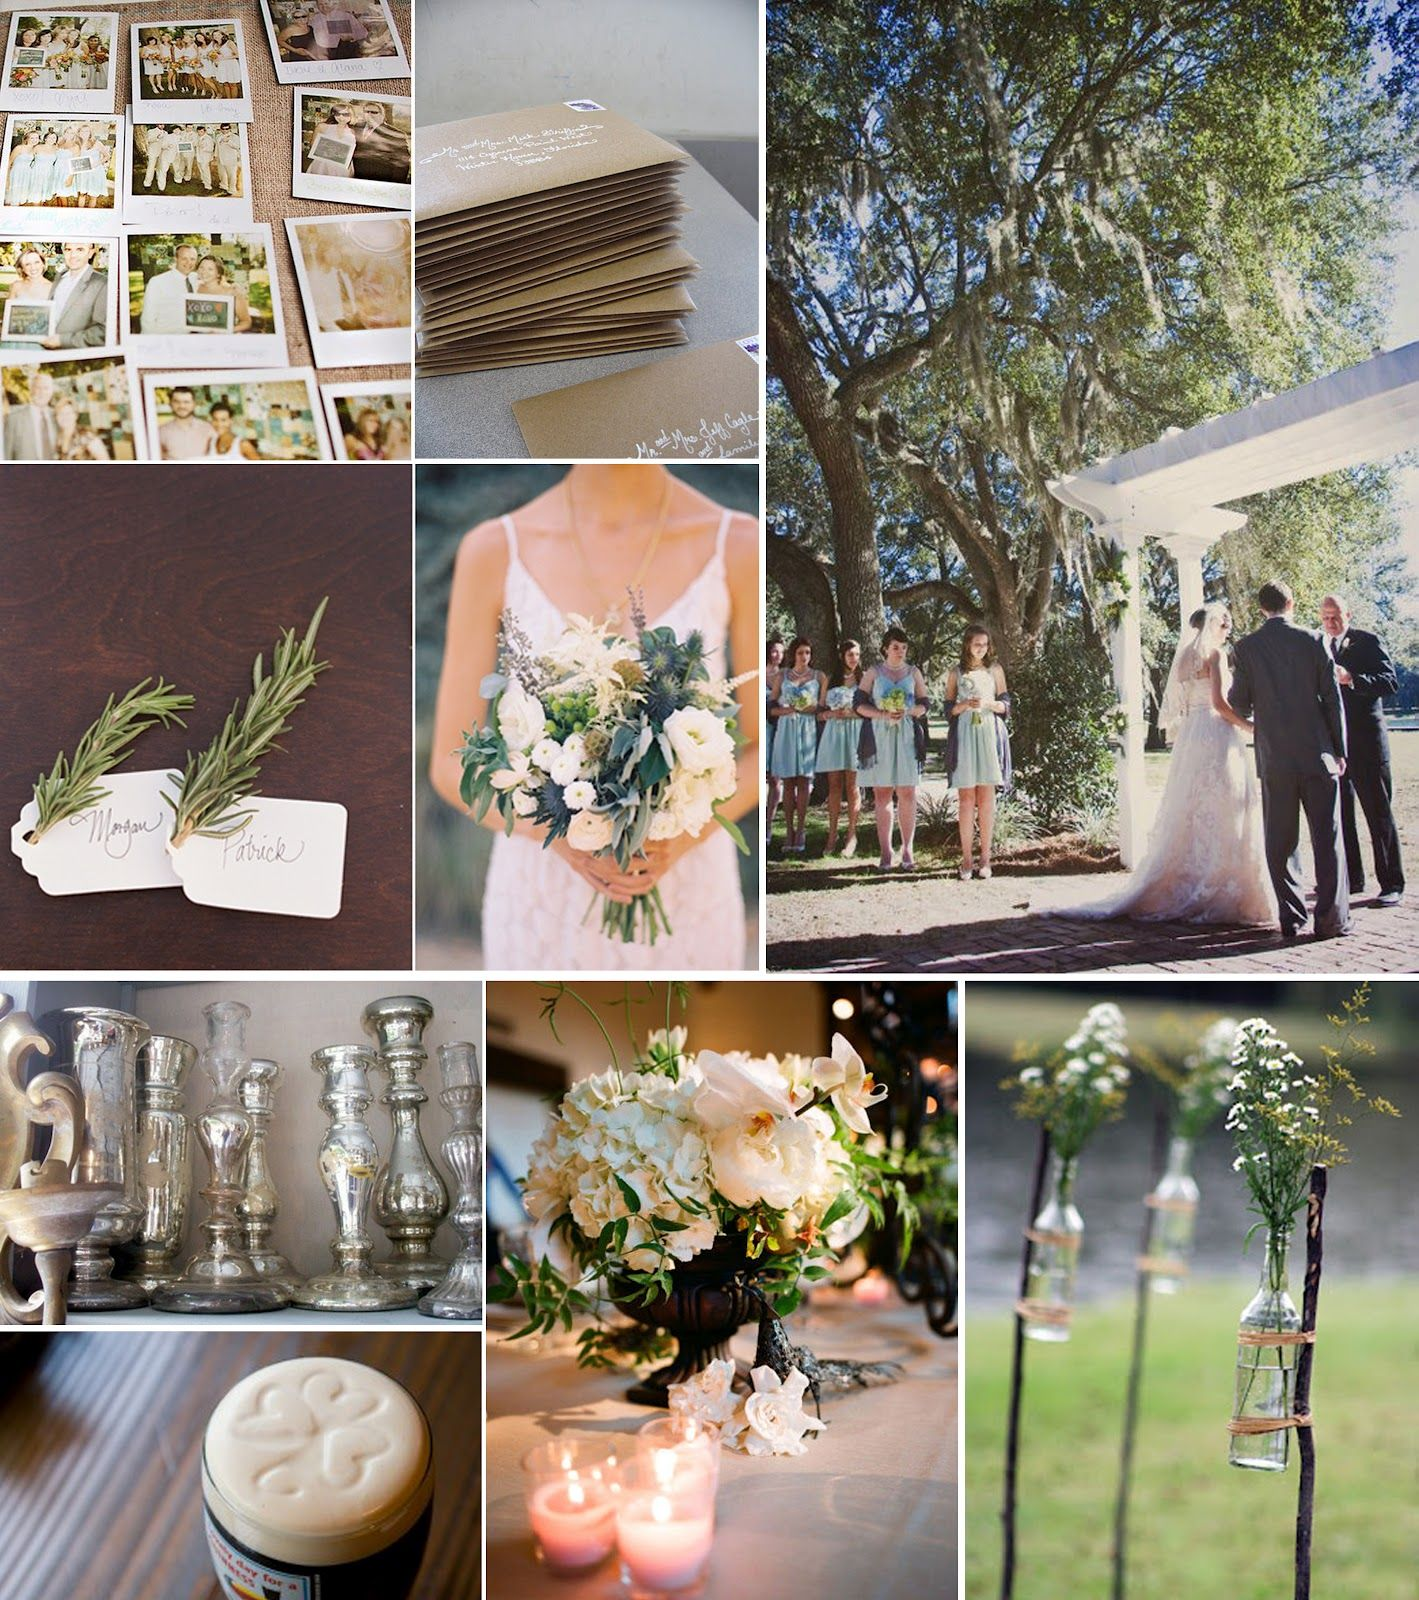 Entertainment Ideas For Wedding: Cards, Rosemary And More...